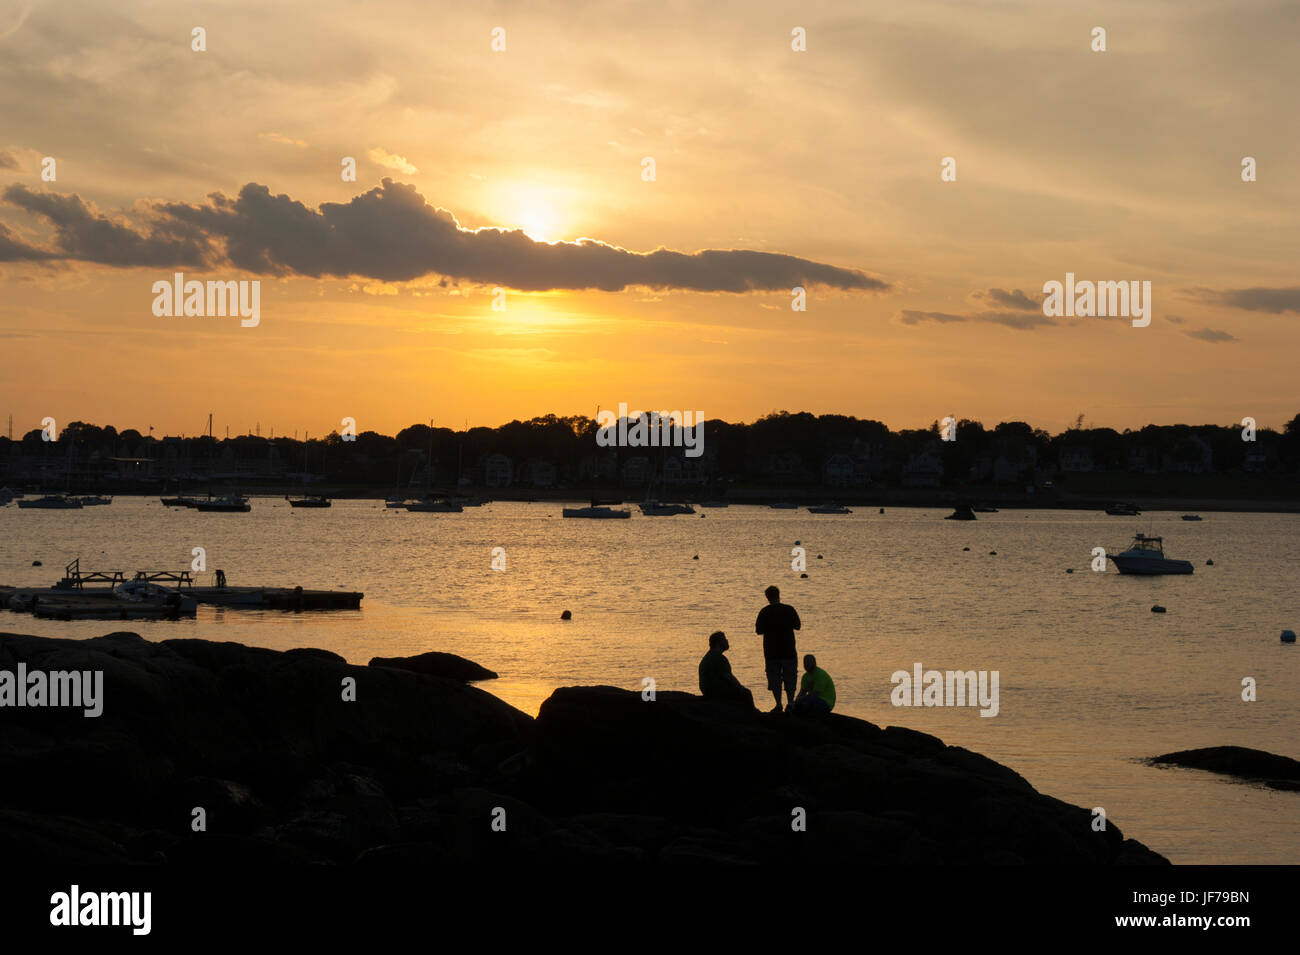 Group of friends enjoying each other's company on the shore of Beverly Harbor, at sunset. Salem Willows Park, - Stock Image